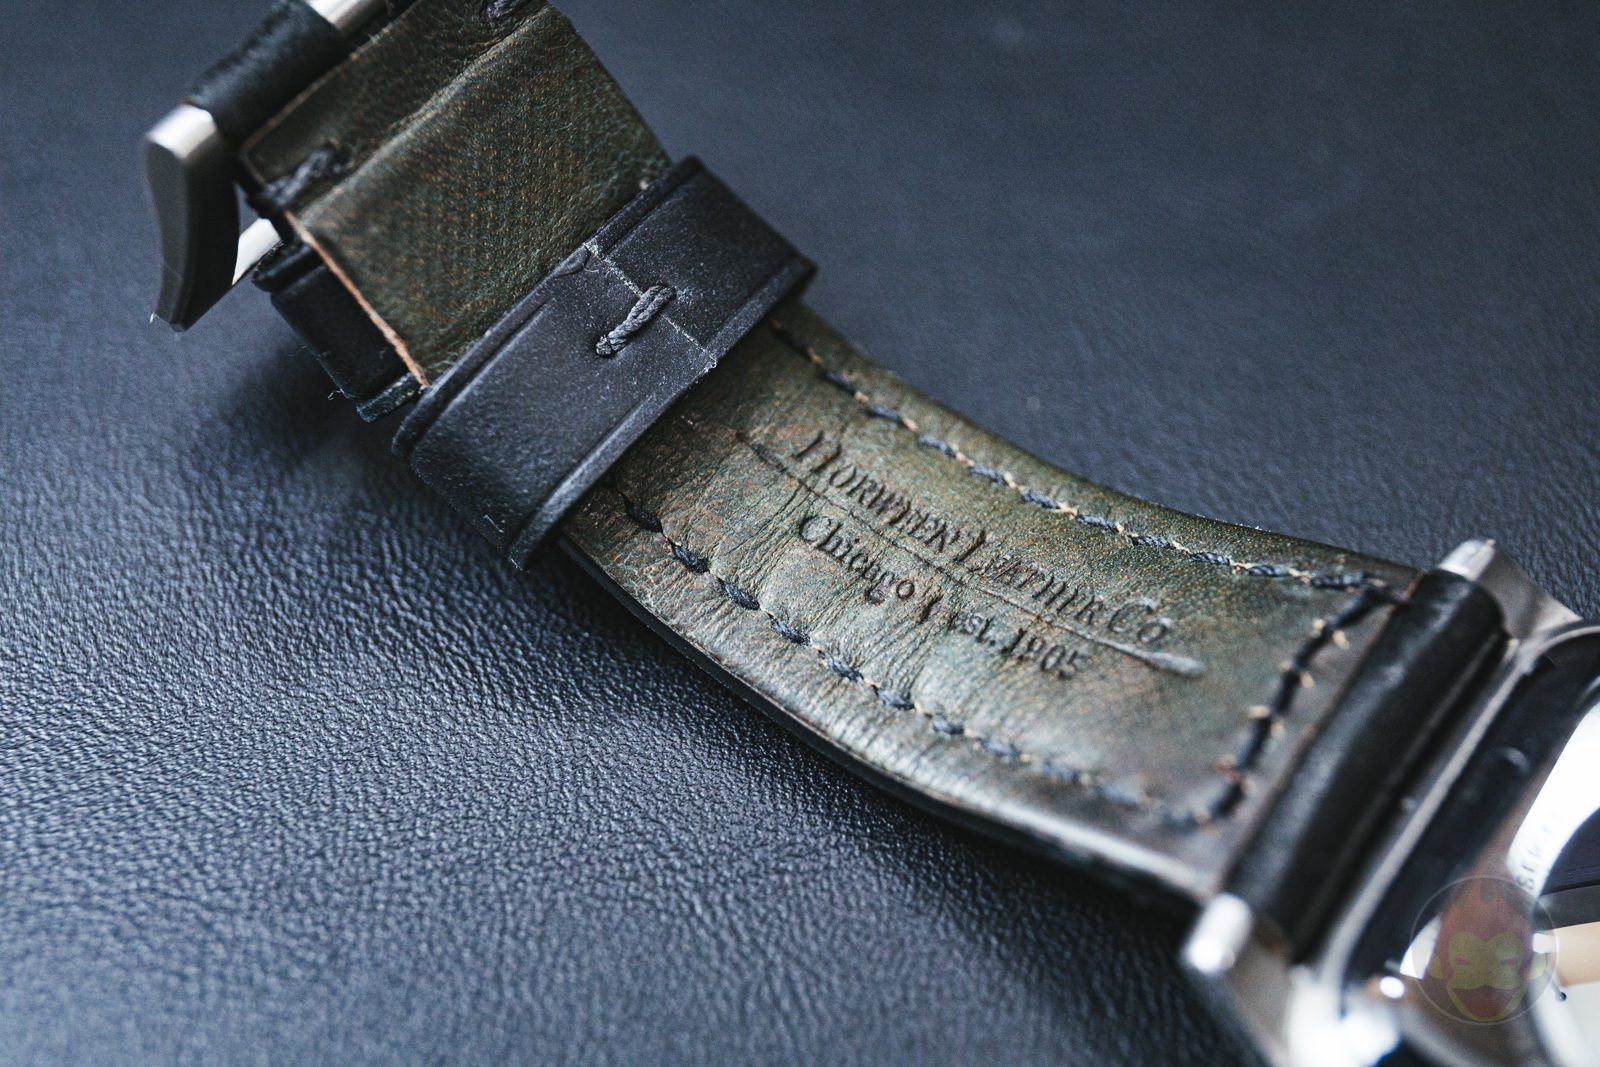 Apple-Watch-NOMAD-Shell-Cordovan-Strap-Review-03.jpg